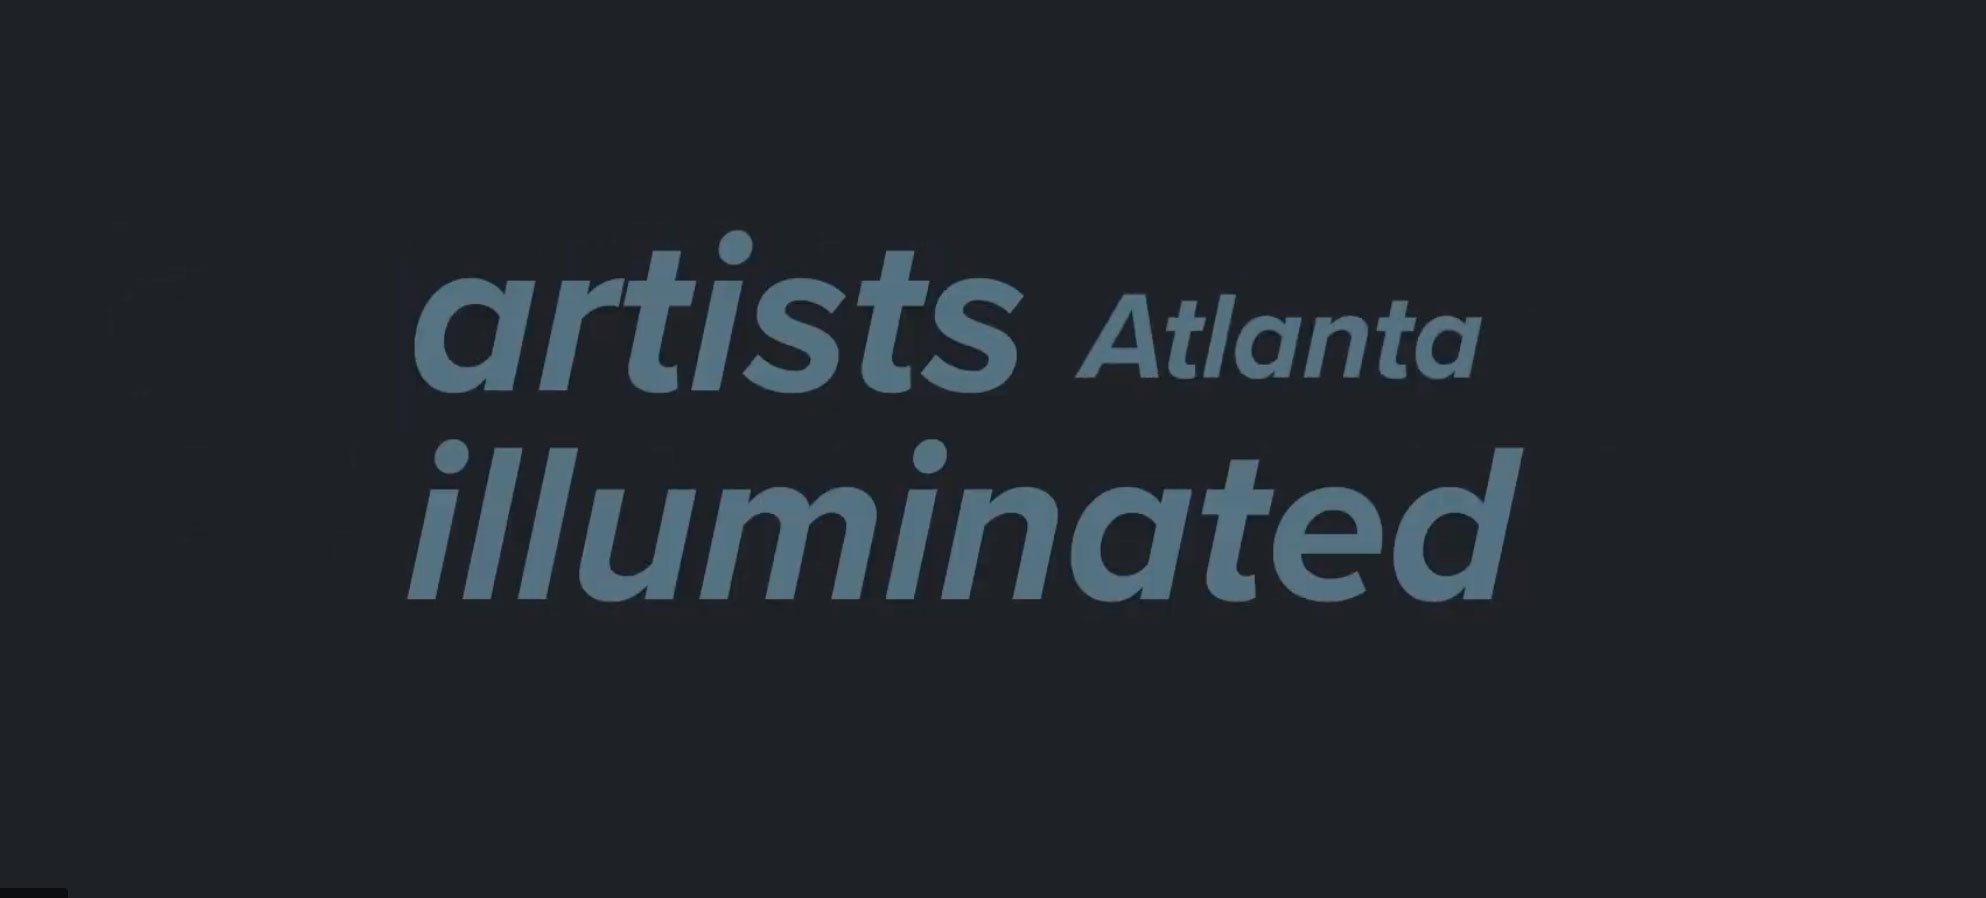 Illuminated Artists Atlanta Video Series by Illuminated Creative